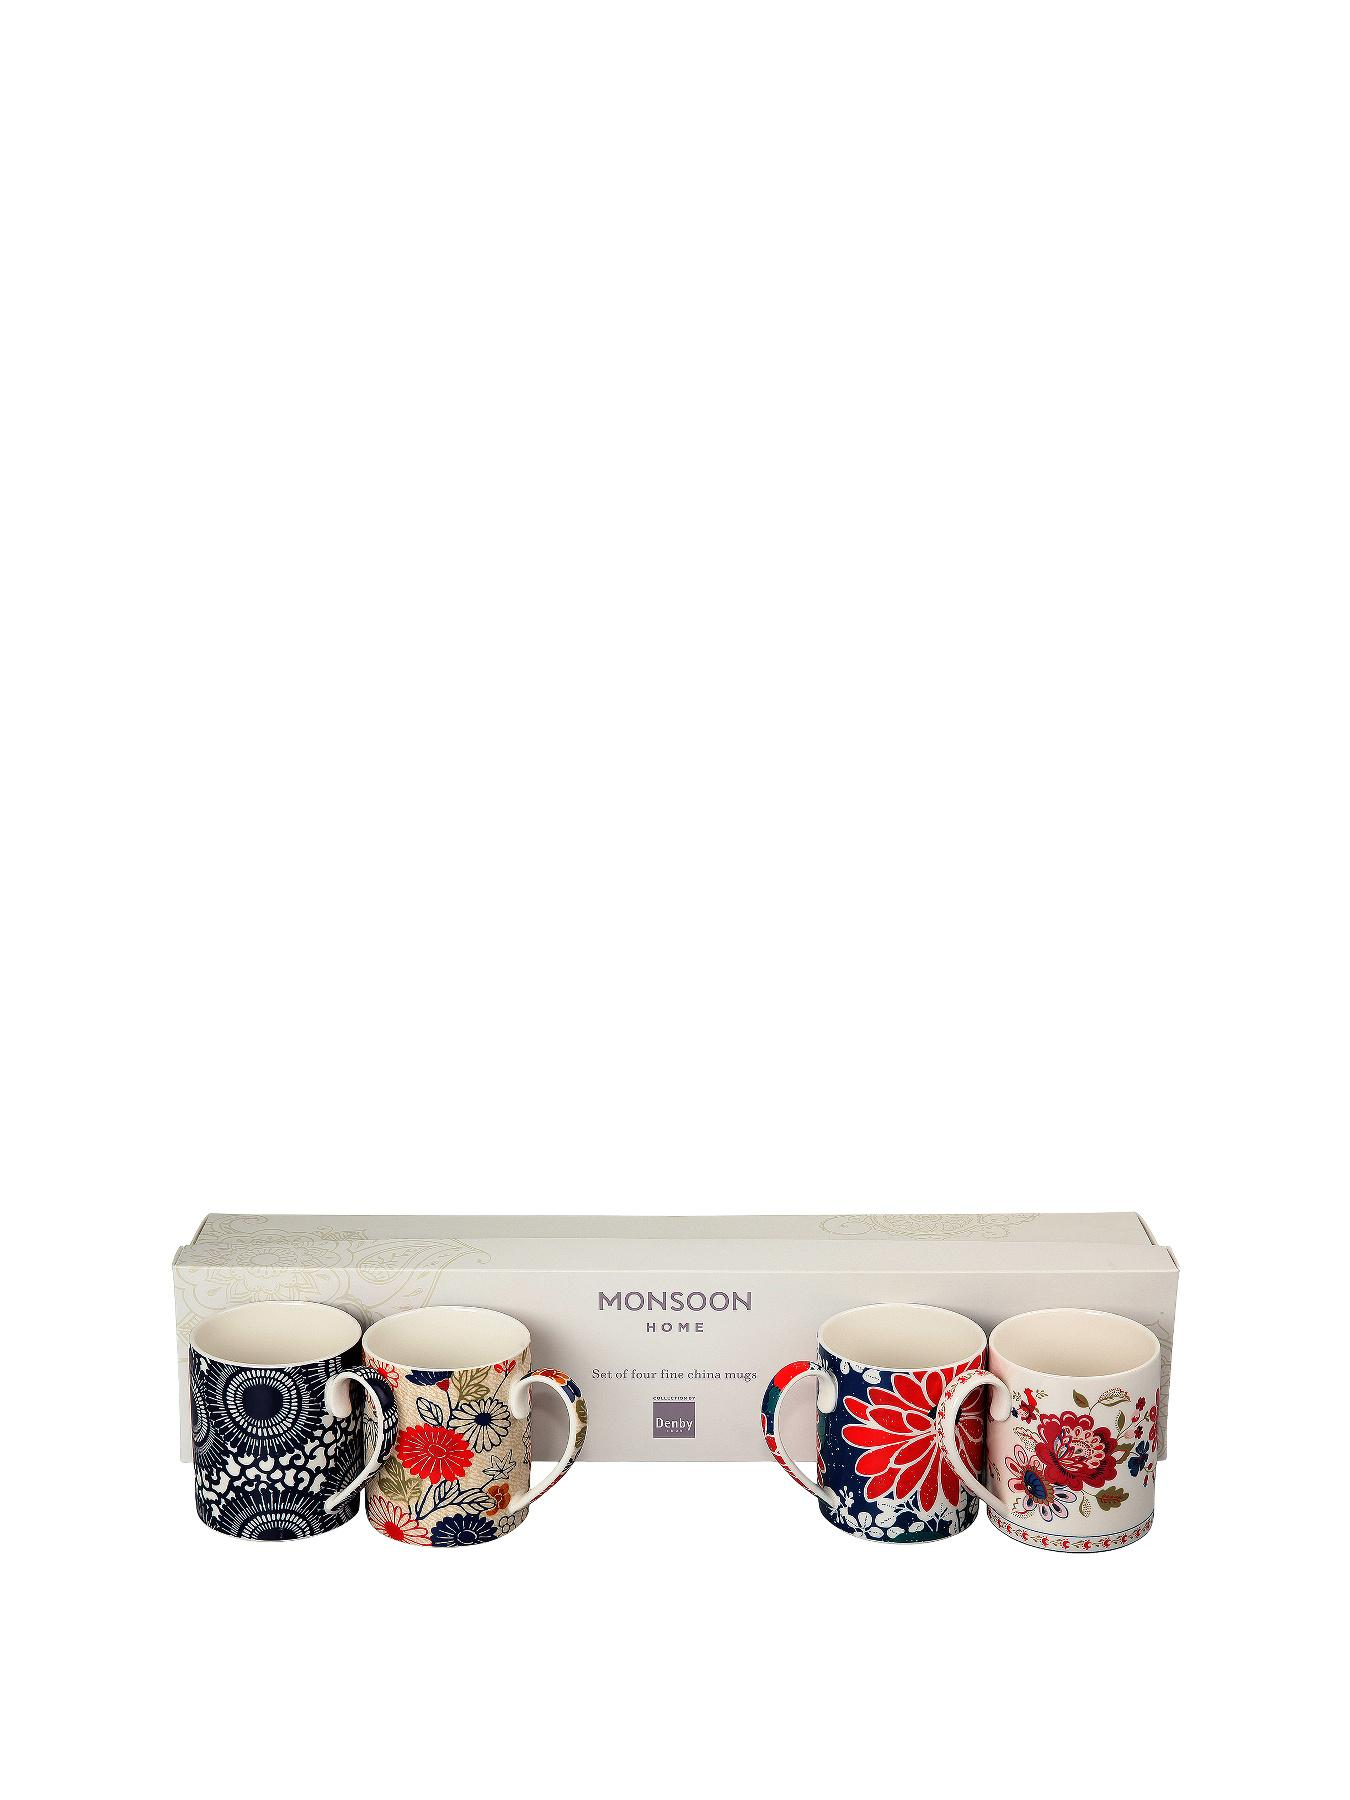 Denby Monsoon Home Collection by Denby 4 Piece Gift Boxed Mug Set